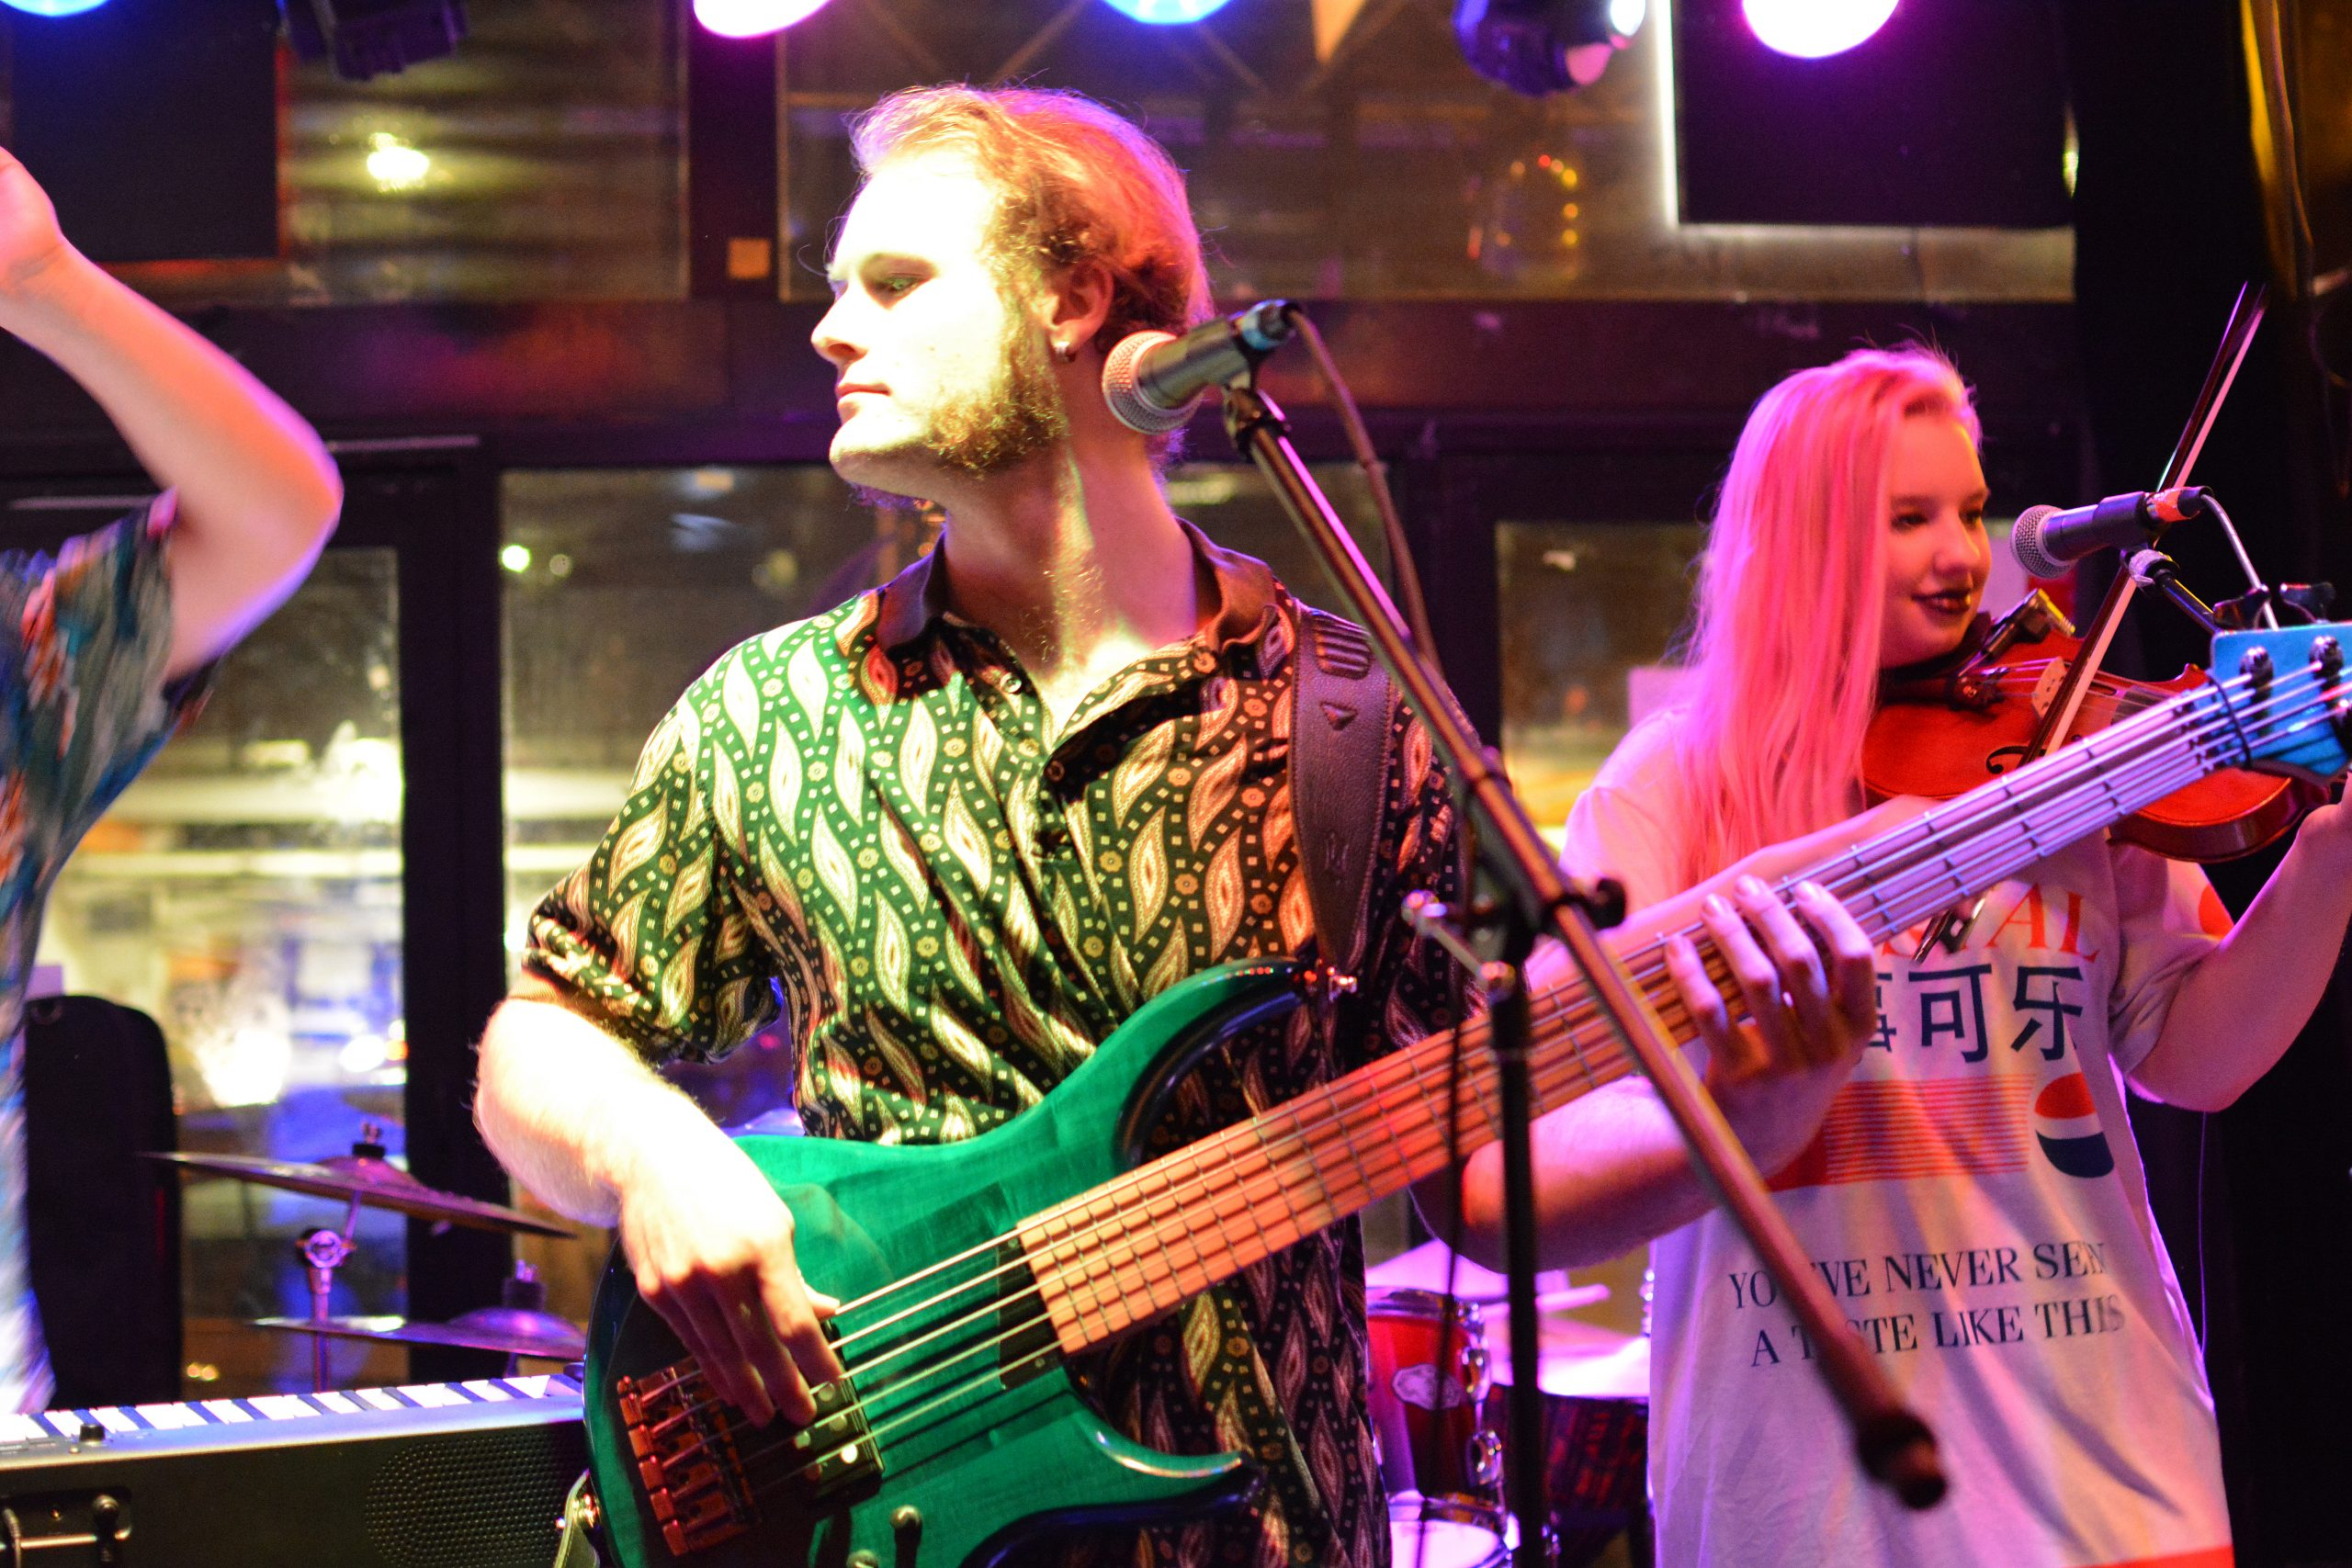 Saul plays the bass guitar; Emma plays the fiddle in the background on the right side of the image